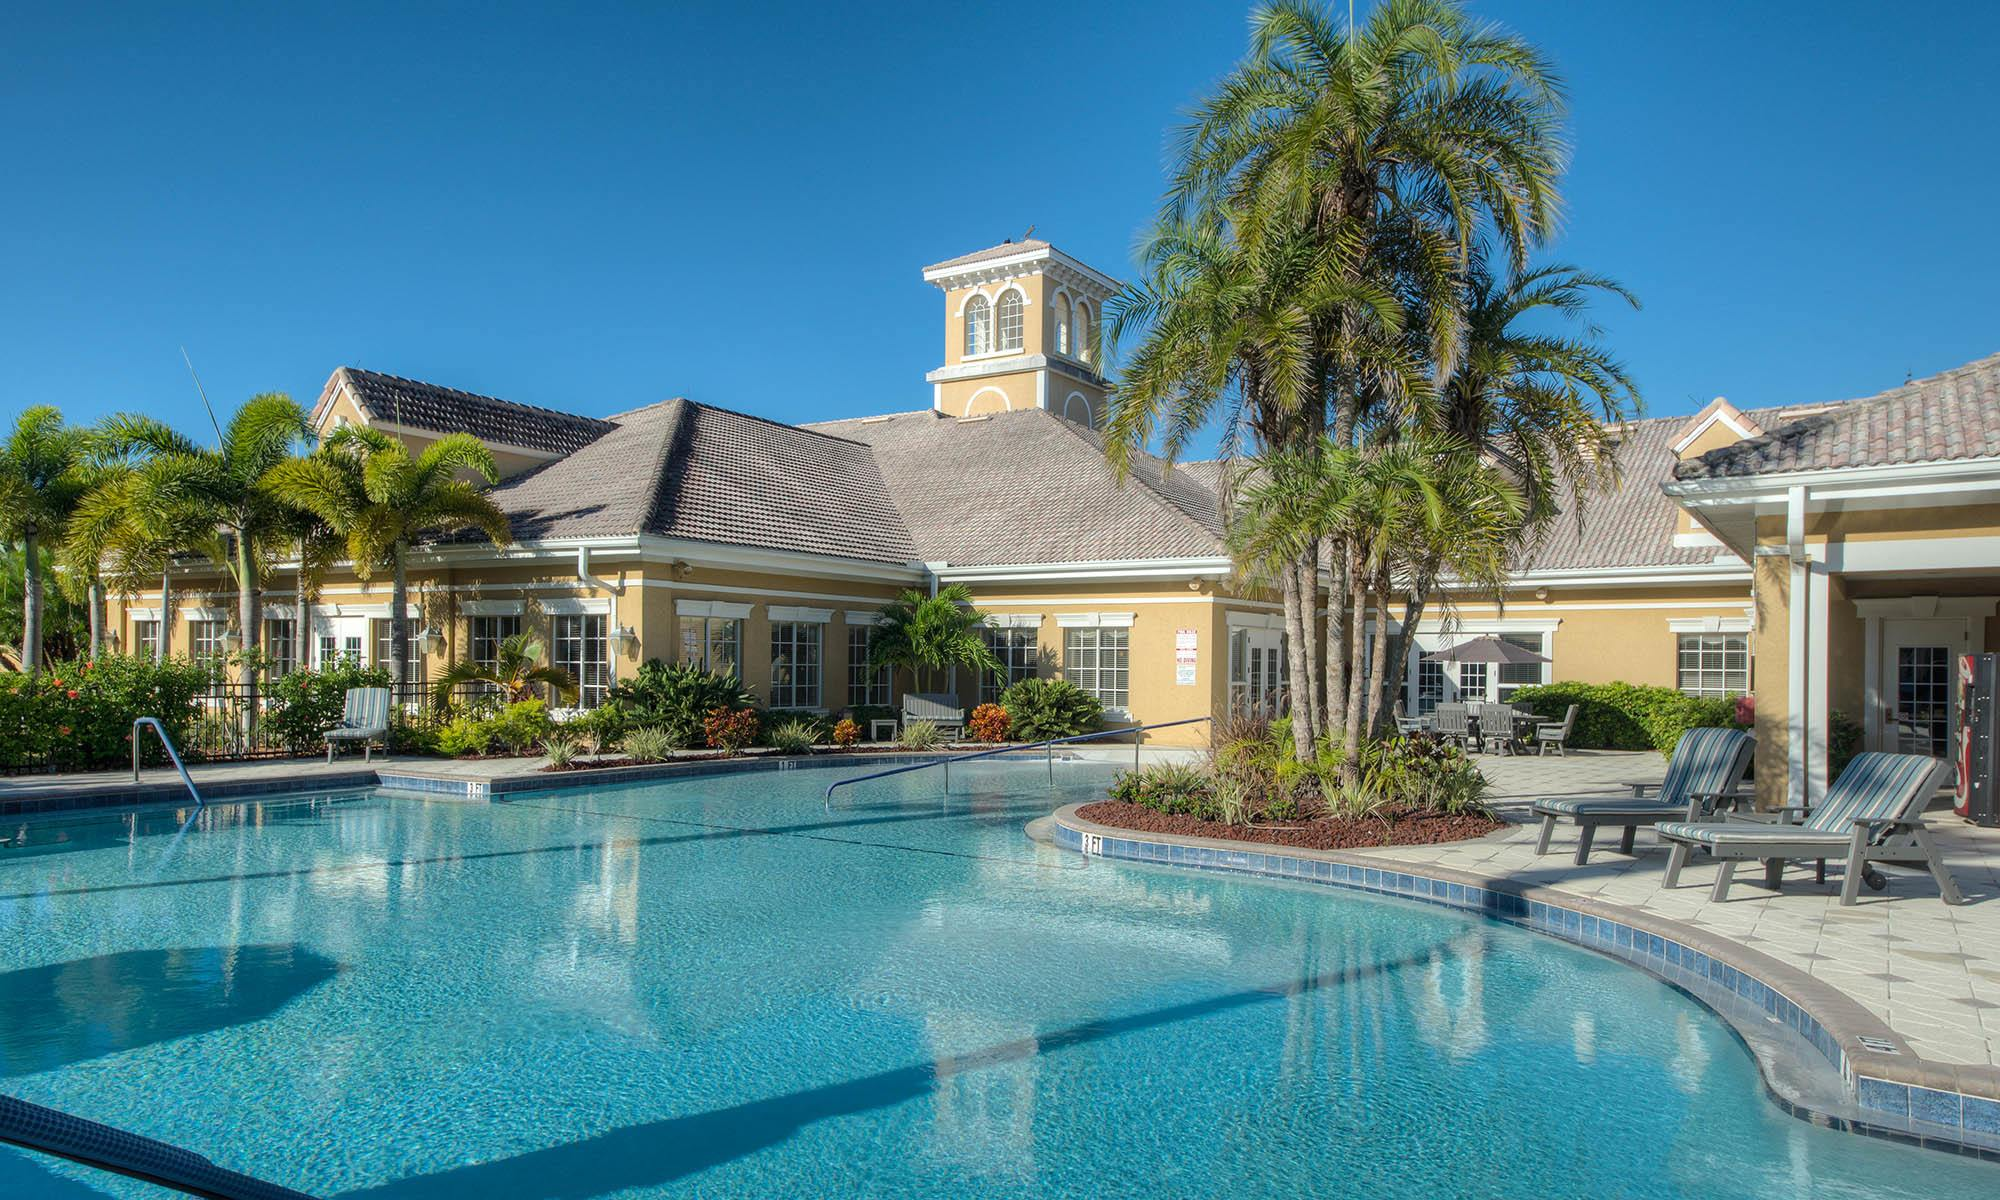 Aston Gardens At Pelican Pointe 1000 Aston Gardens Dr Venice, FL Nursing  Homes   MapQuest